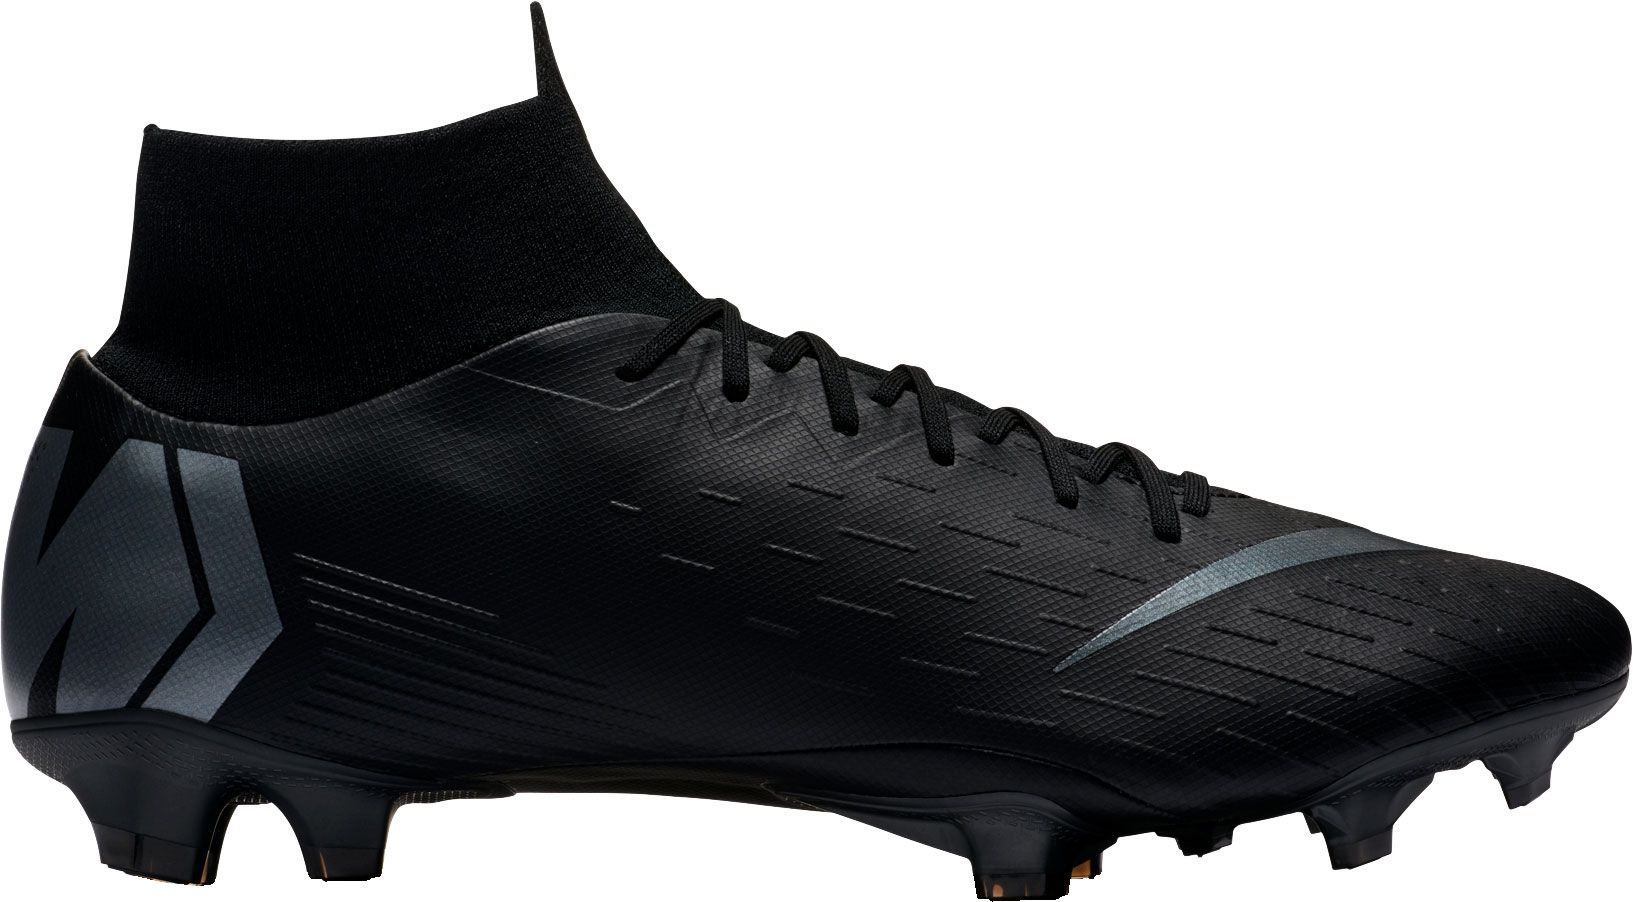 Nike Mercurial Superfly 6 Pro Fg Soccer Cleats Black Cleats Soccer Cleats Superfly